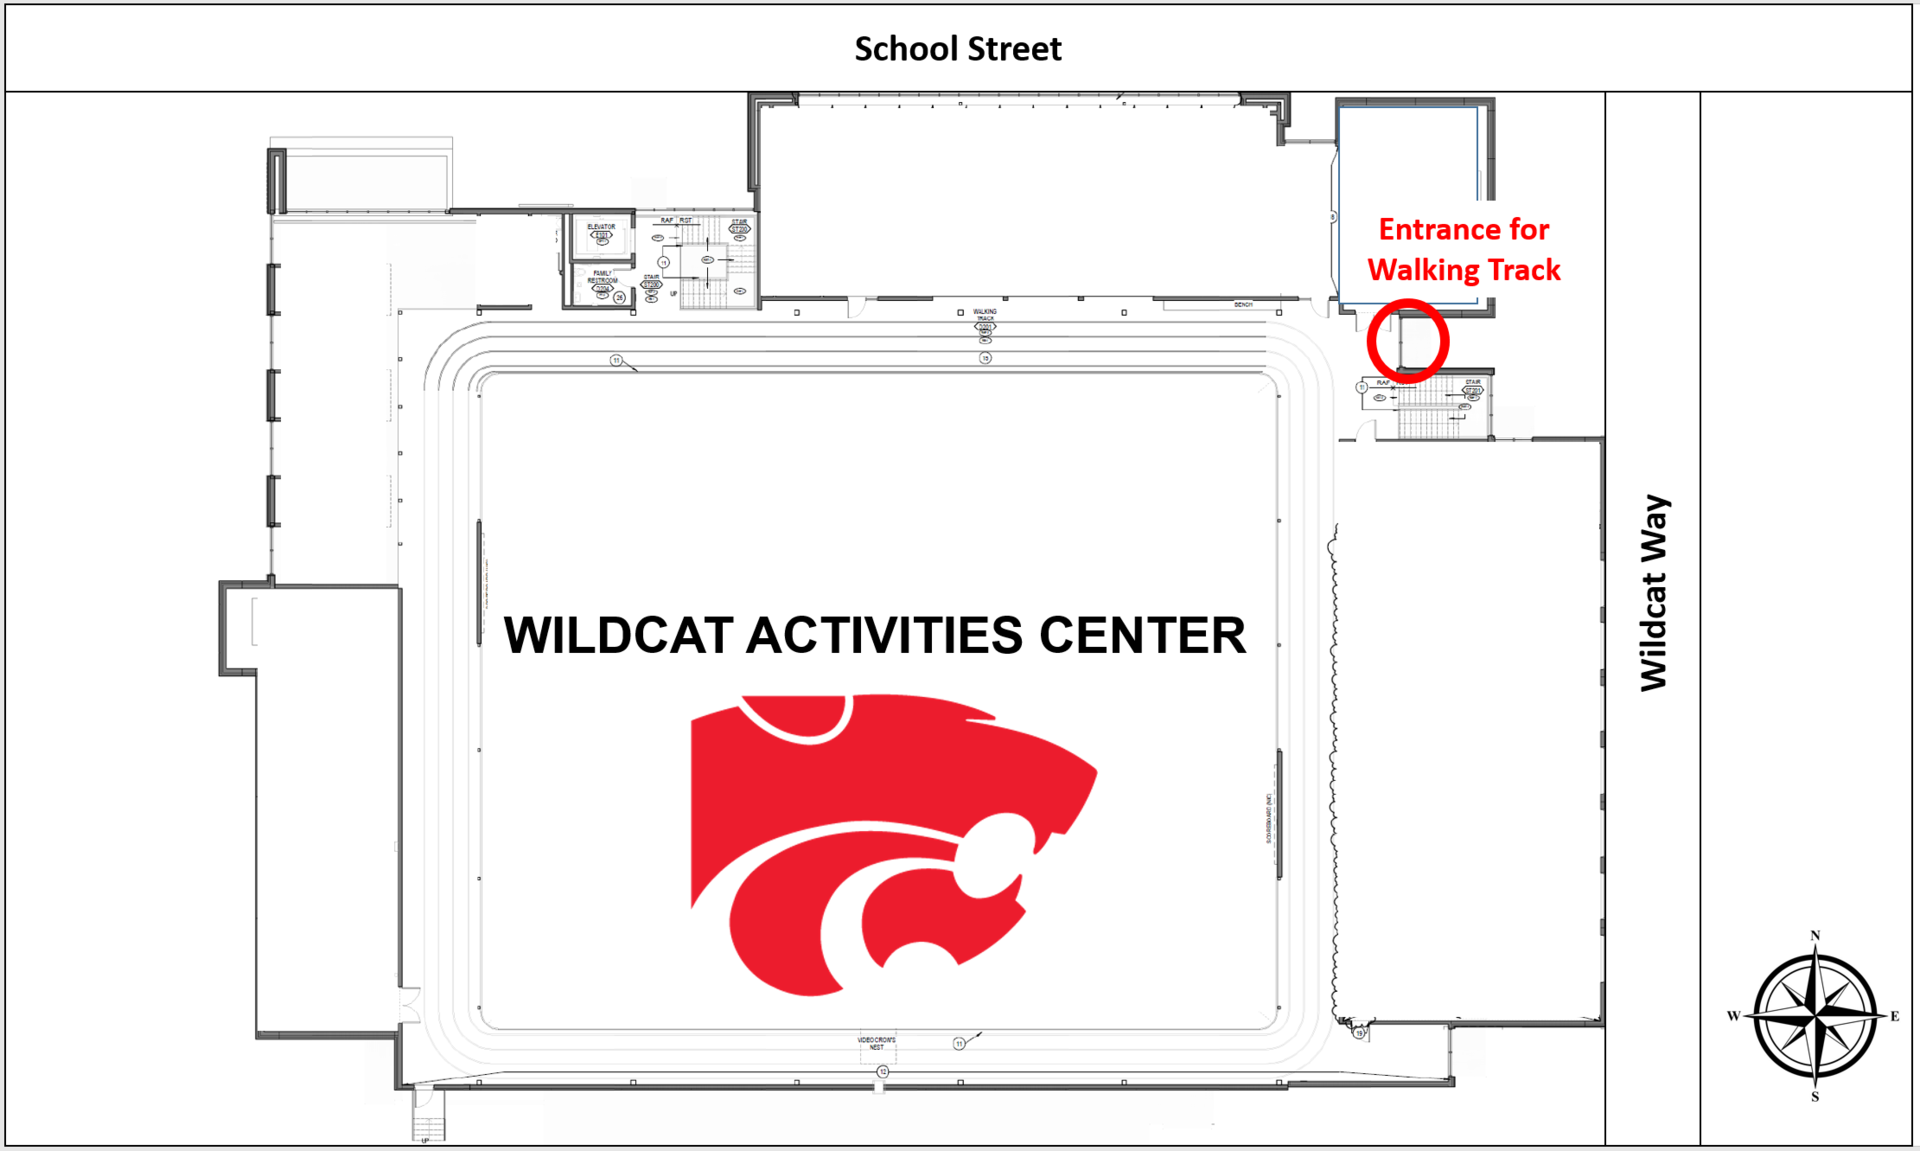 Indoor Walking Track Entrance Map